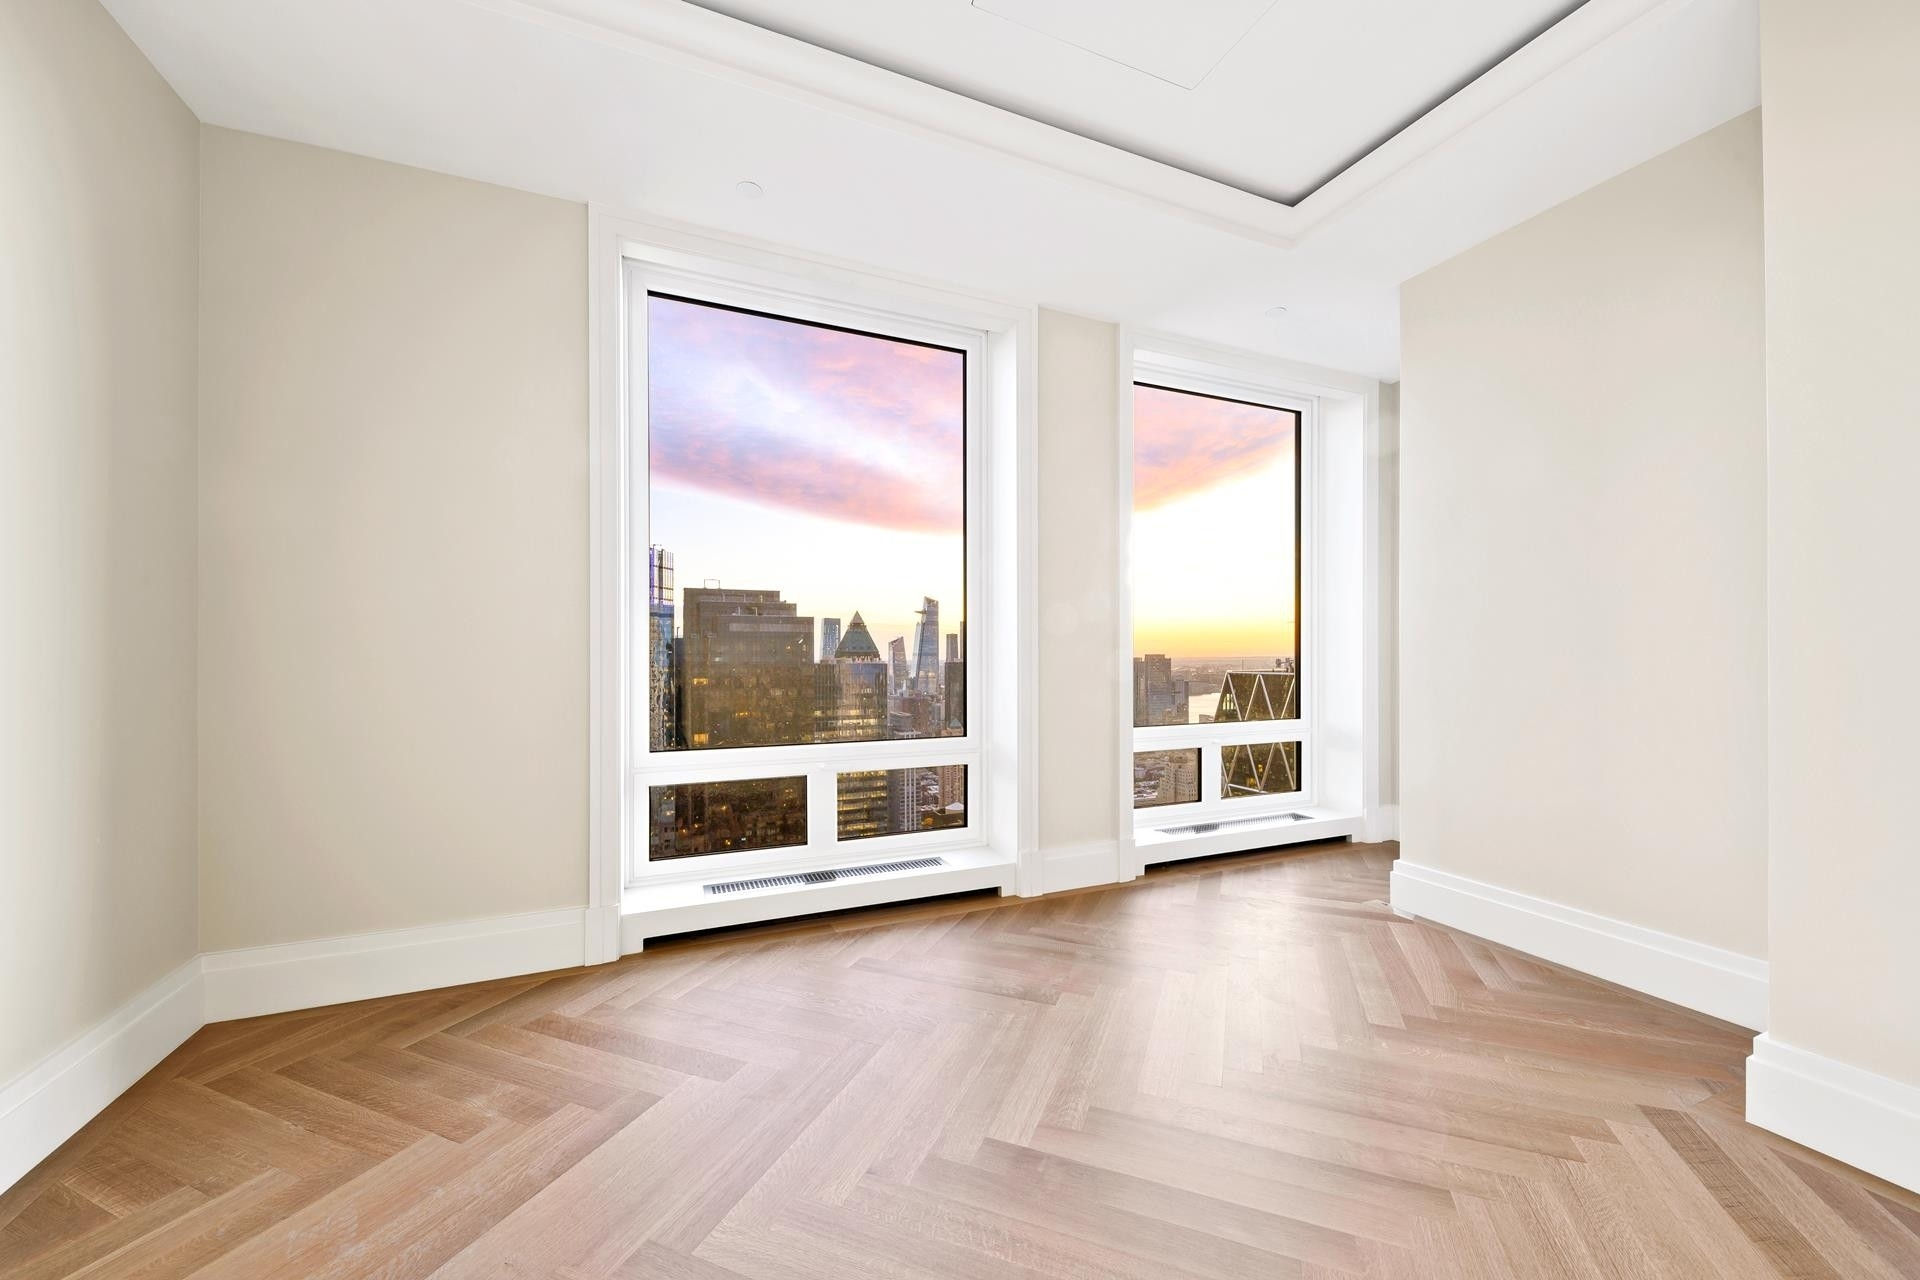 10. Condominiums for Sale at 220 CPS, 220 CENTRAL PARK S, 54/55A Central Park South, New York, NY 10019